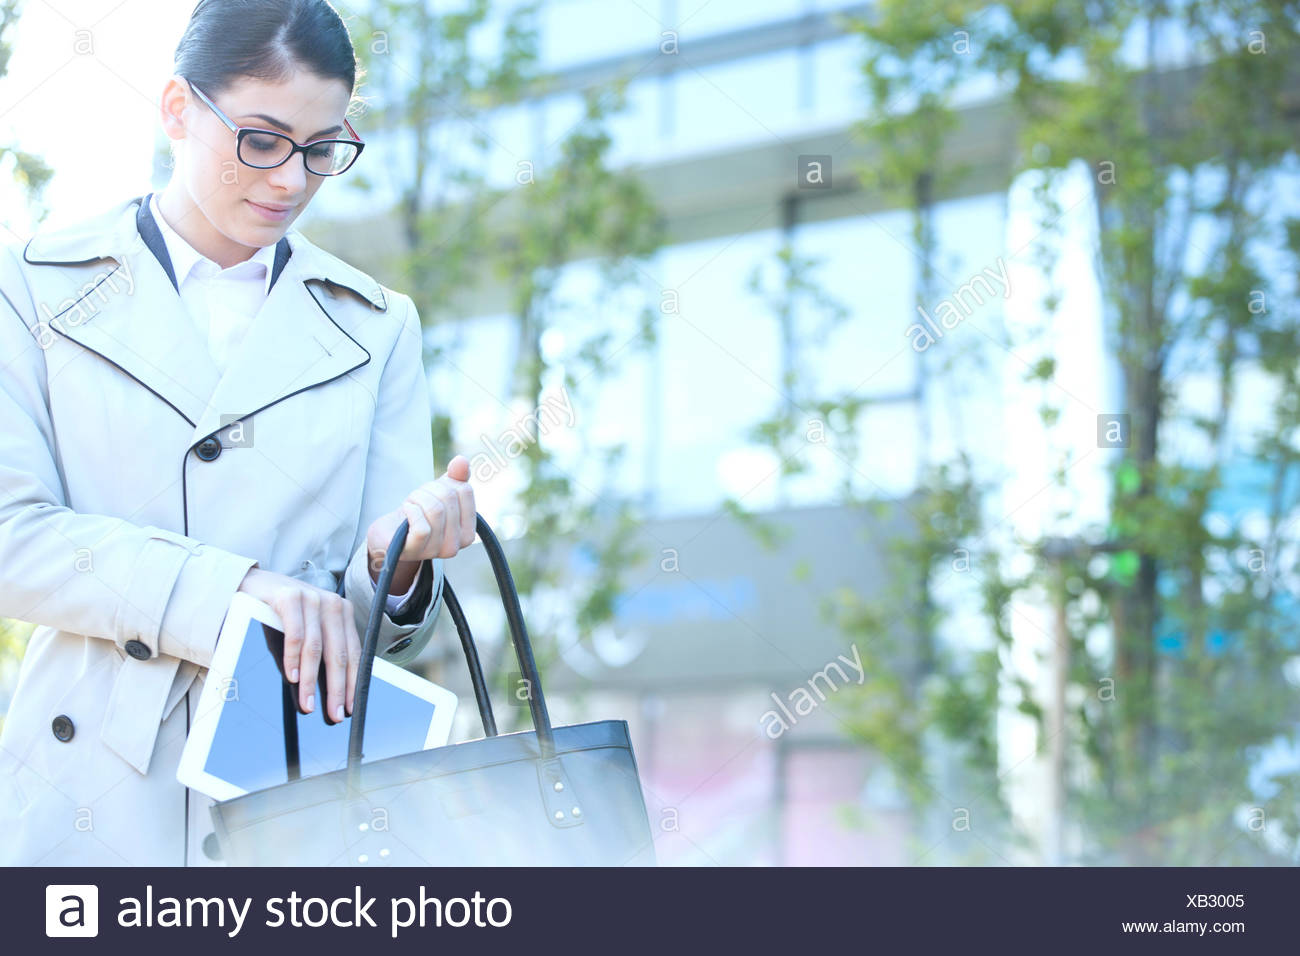 Businesswoman putting digital tablet in purse outdoors - Stock Image